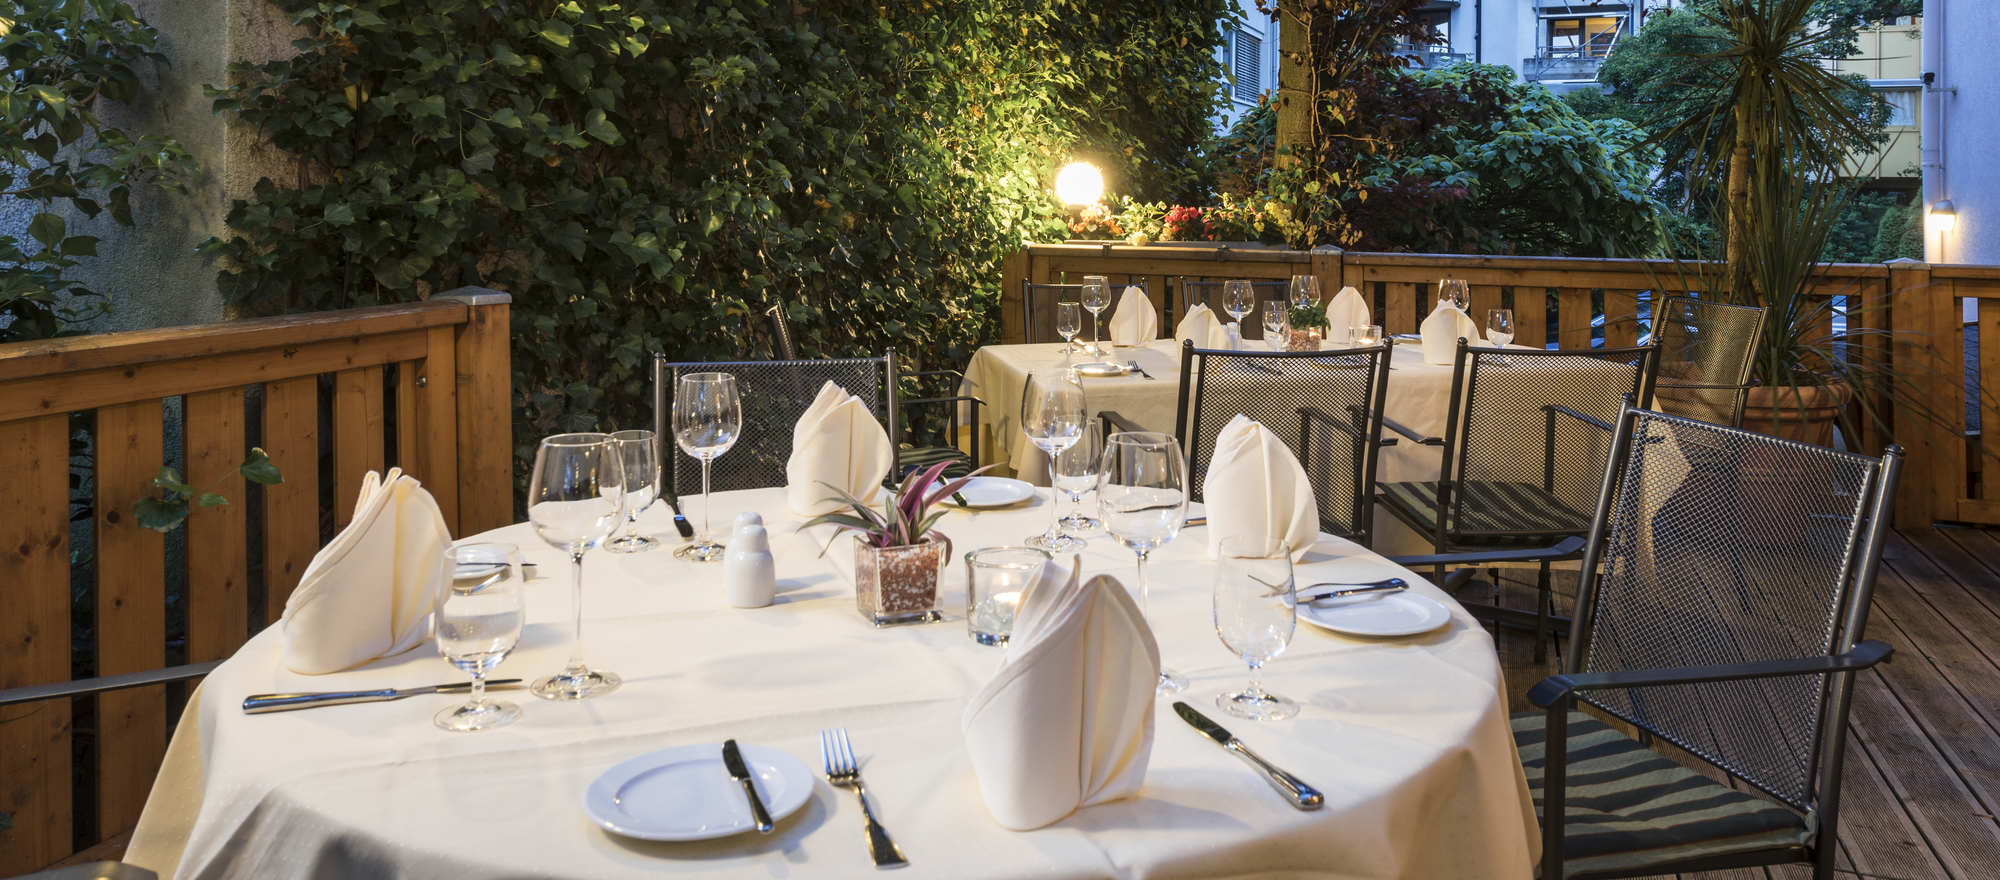 Garden restaurant in the Ringhotel Stadt Coburg, 3-stars superior hotel in Franconia